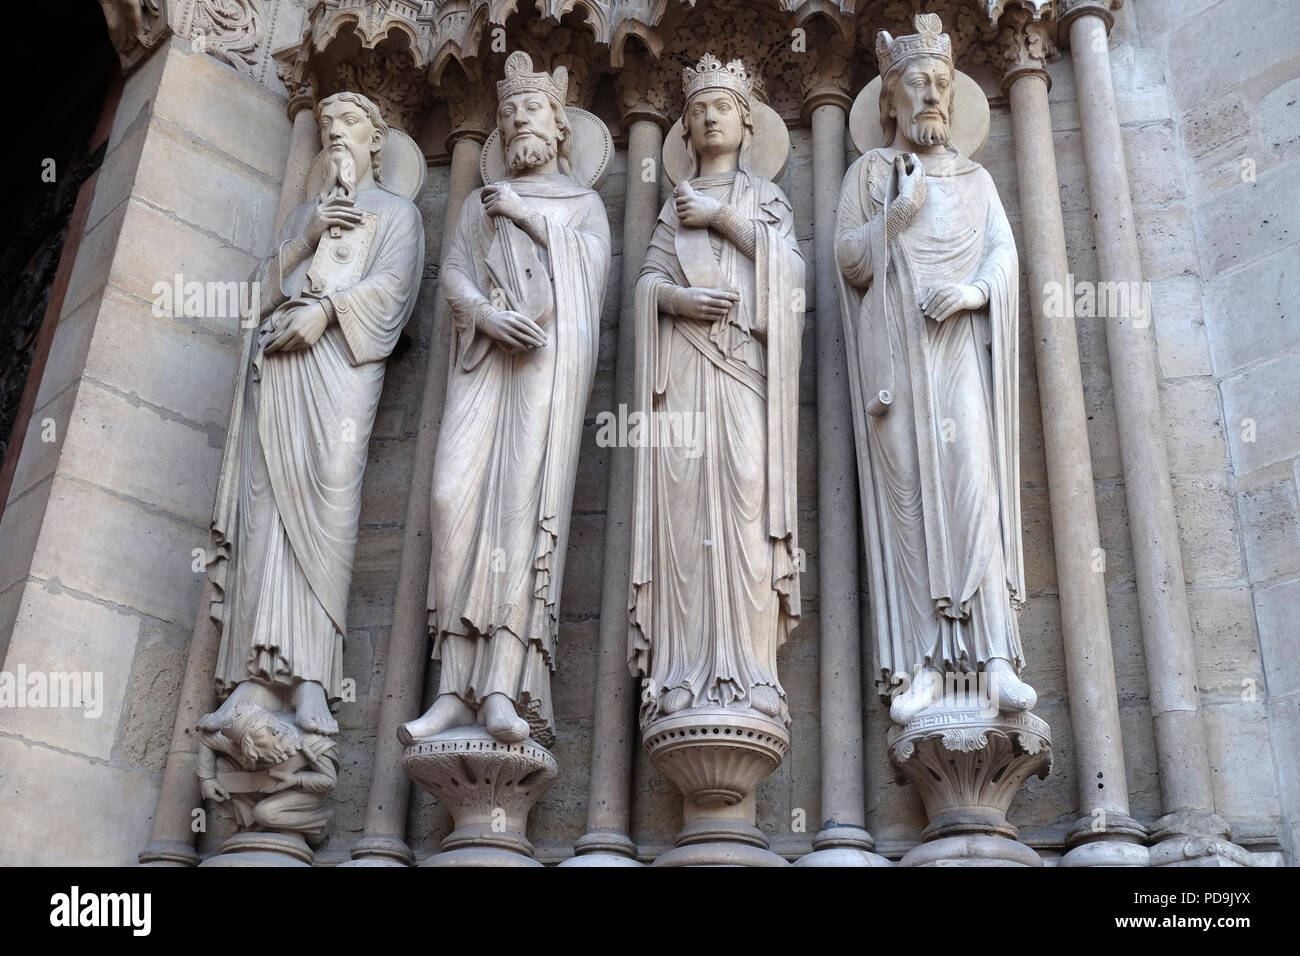 Saint Paul, King David, a queen, and another king, Portal of St. Anne, Notre Dame Cathedral, Paris, UNESCO World Heritage Site in Paris, France Stock Photo